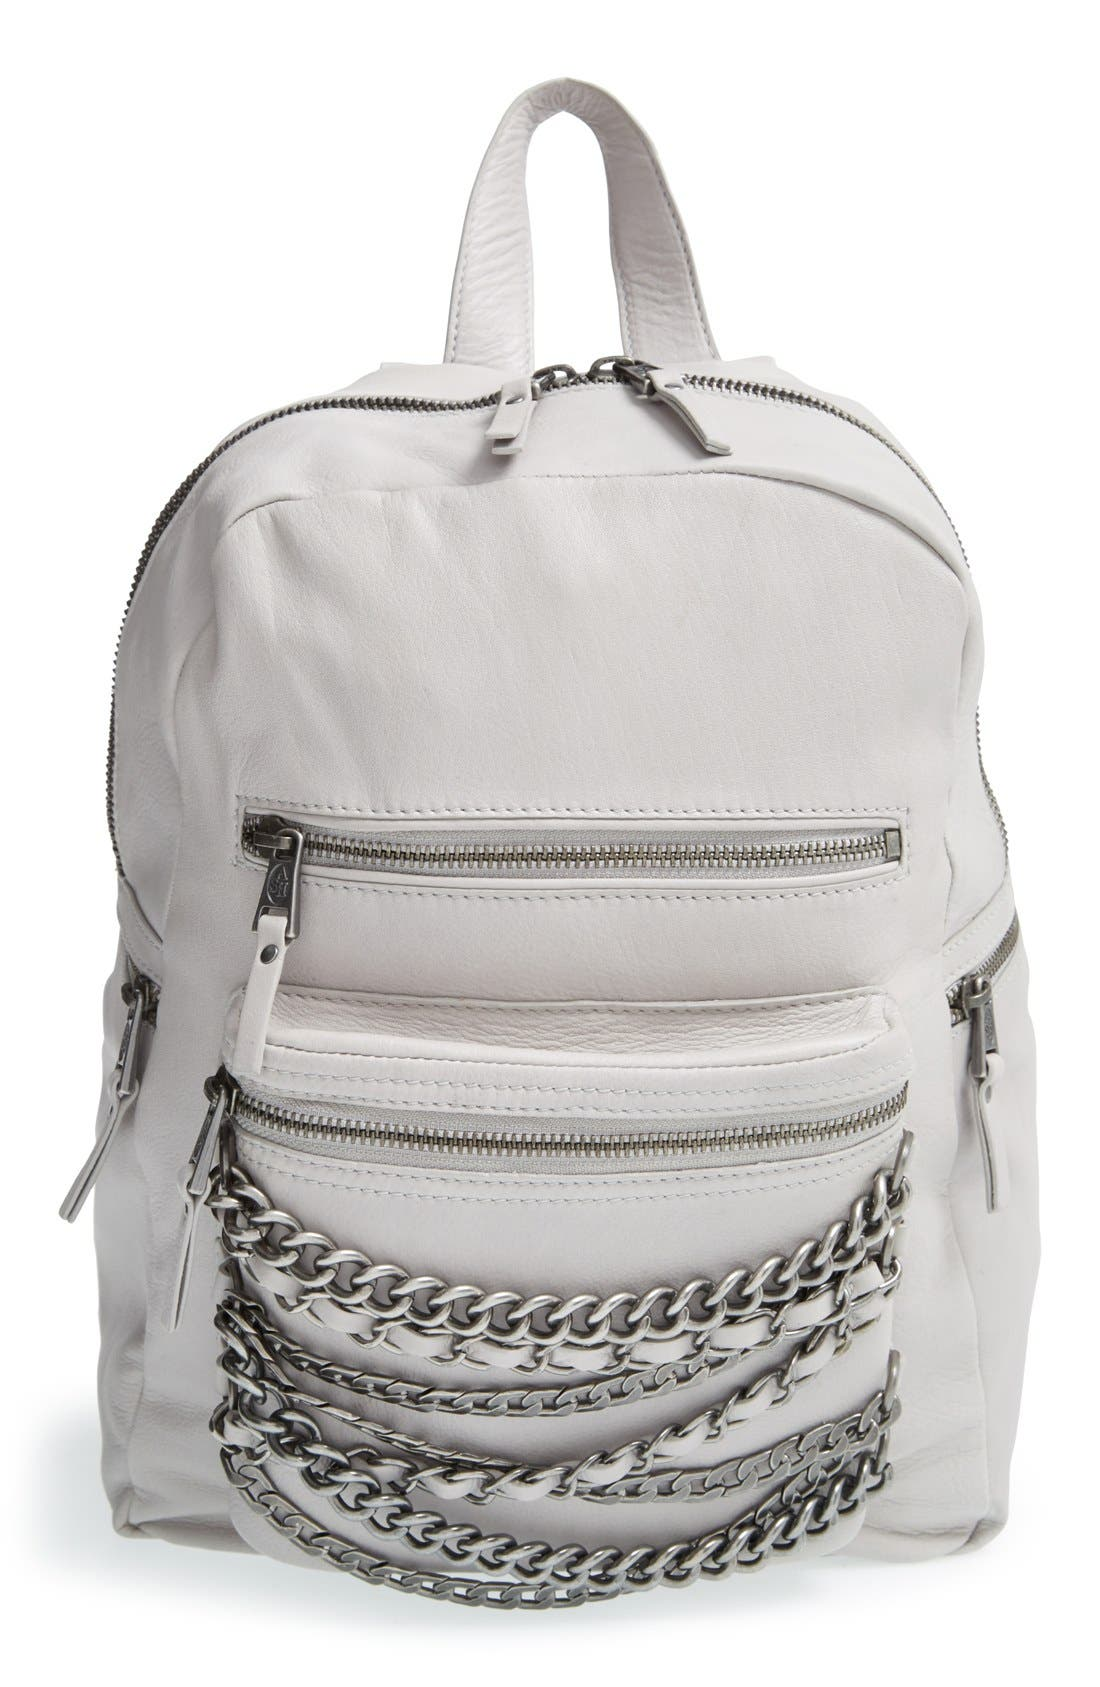 Alternate Image 1 Selected - Ash 'Small Domino' Chain Leather Backpack